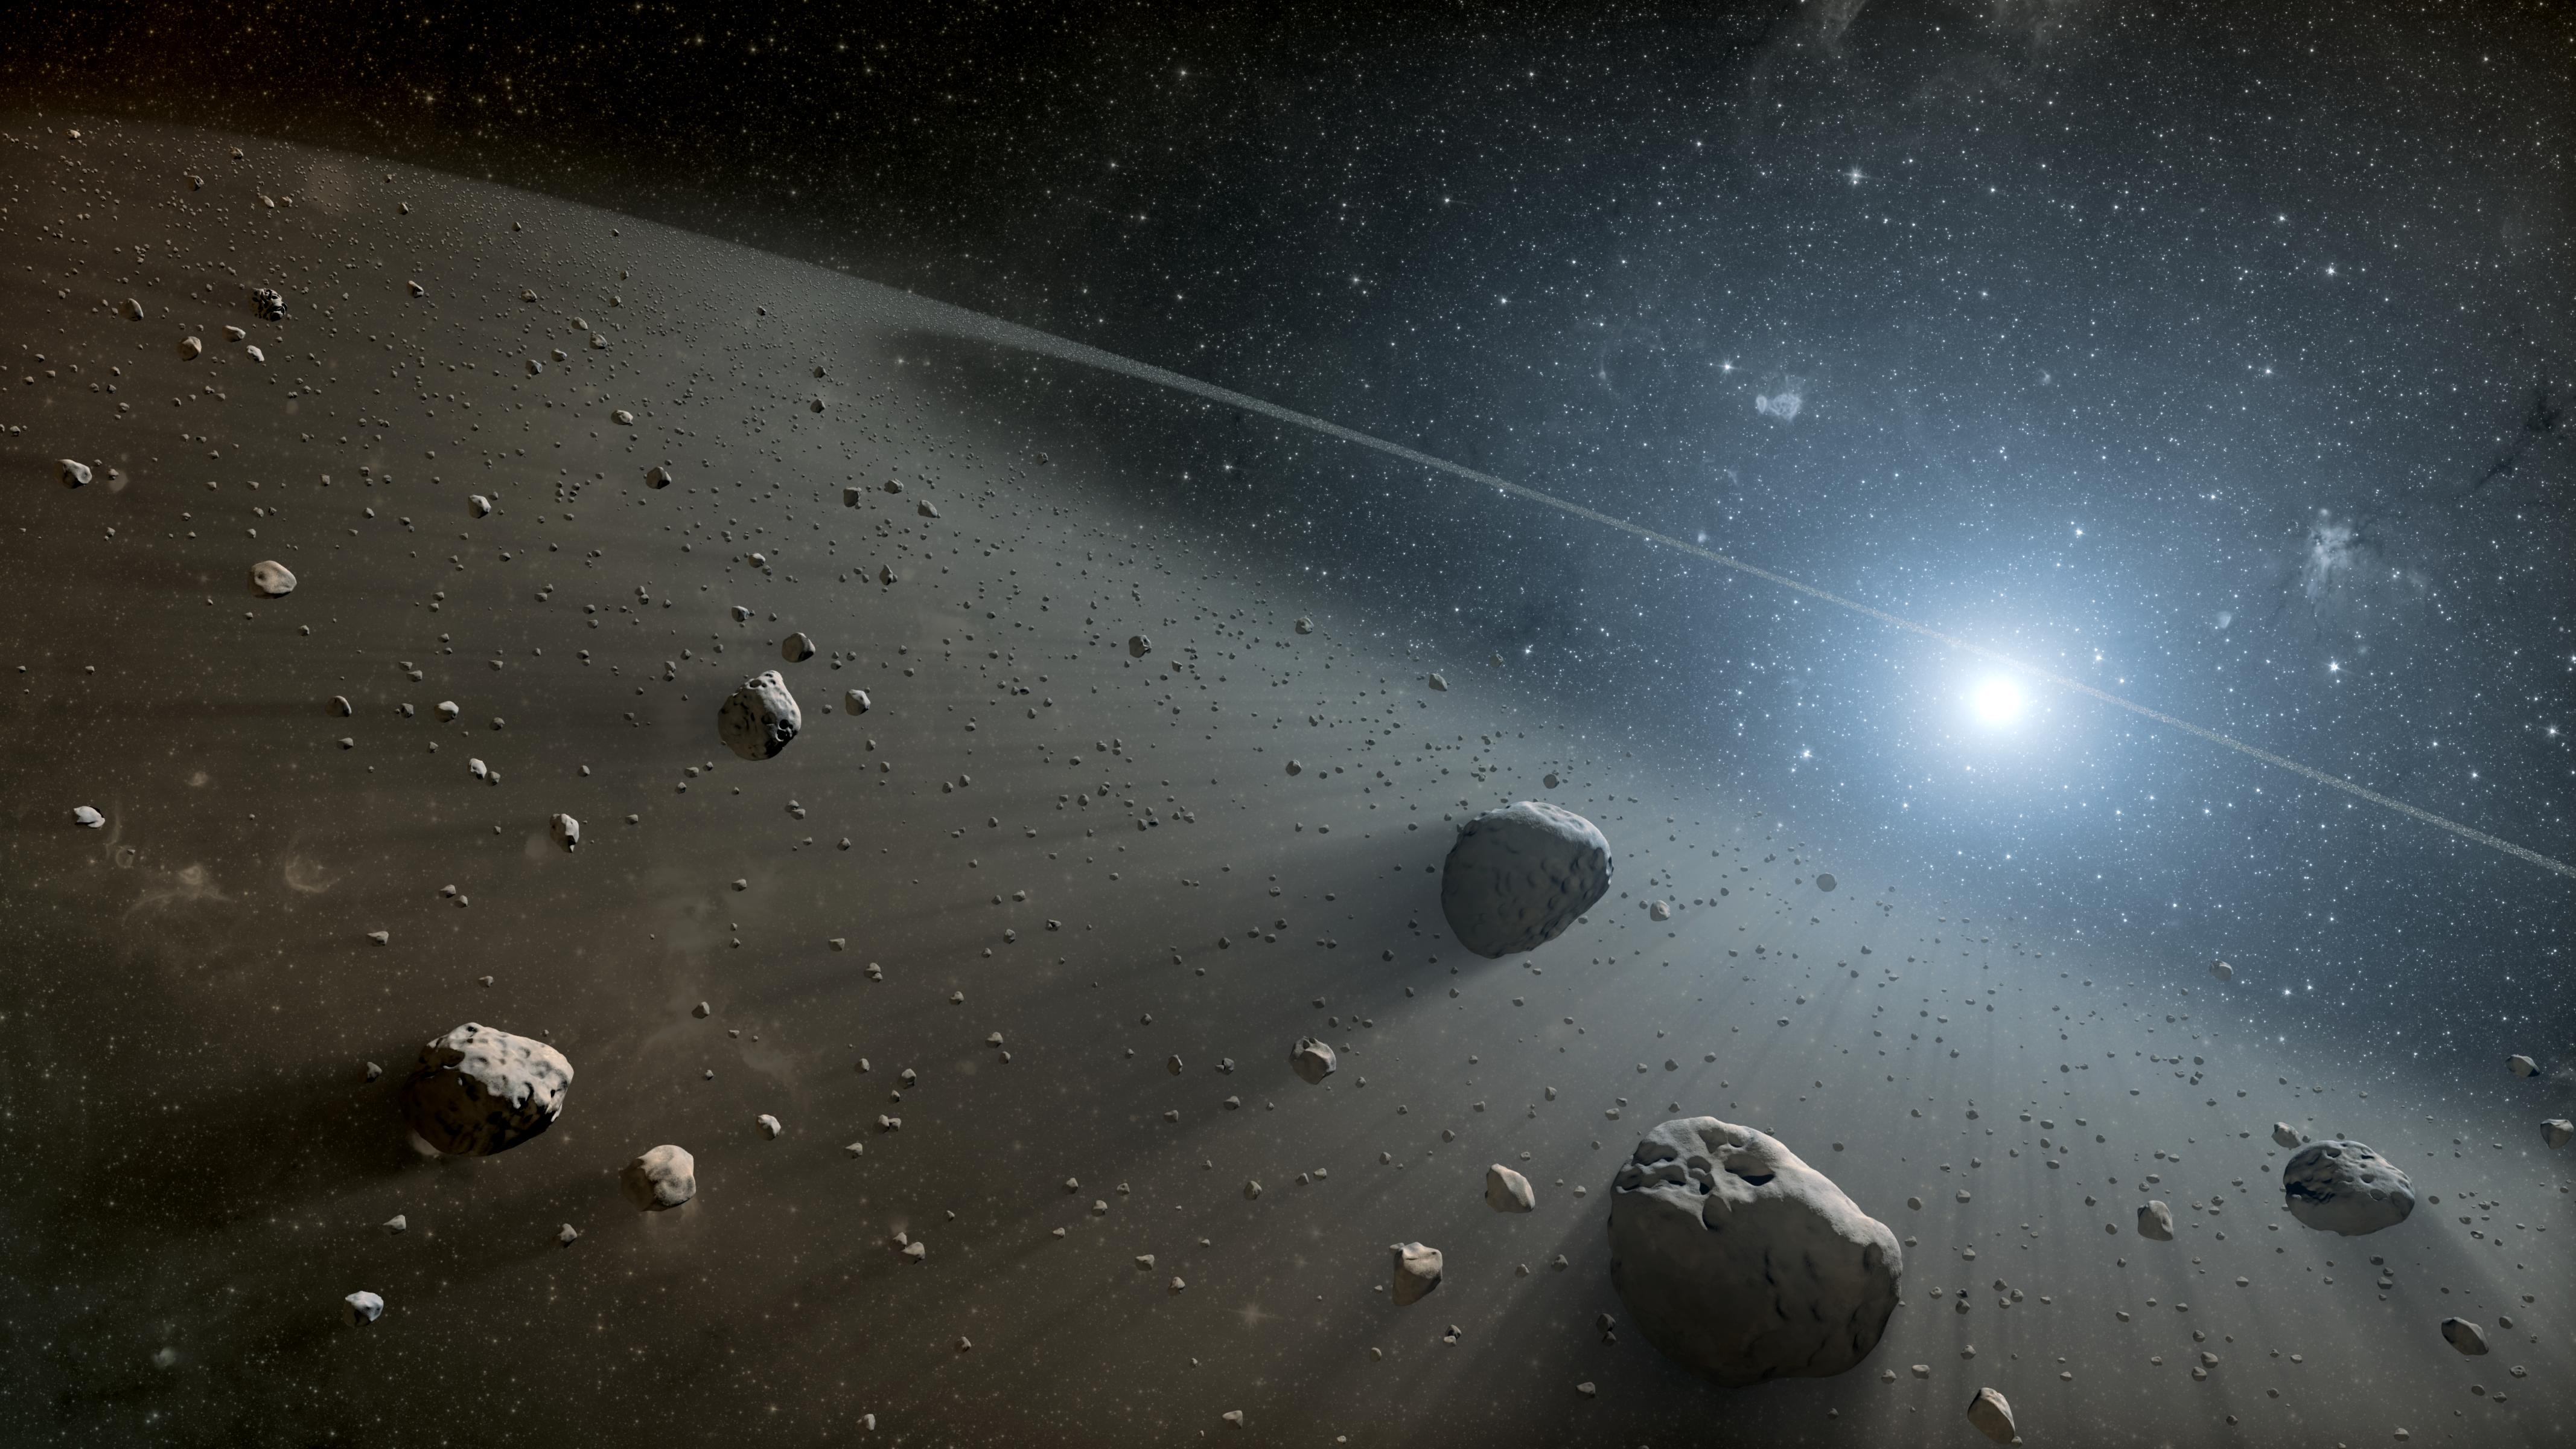 Real Asteroid Belt Images & Pictures - Becuo